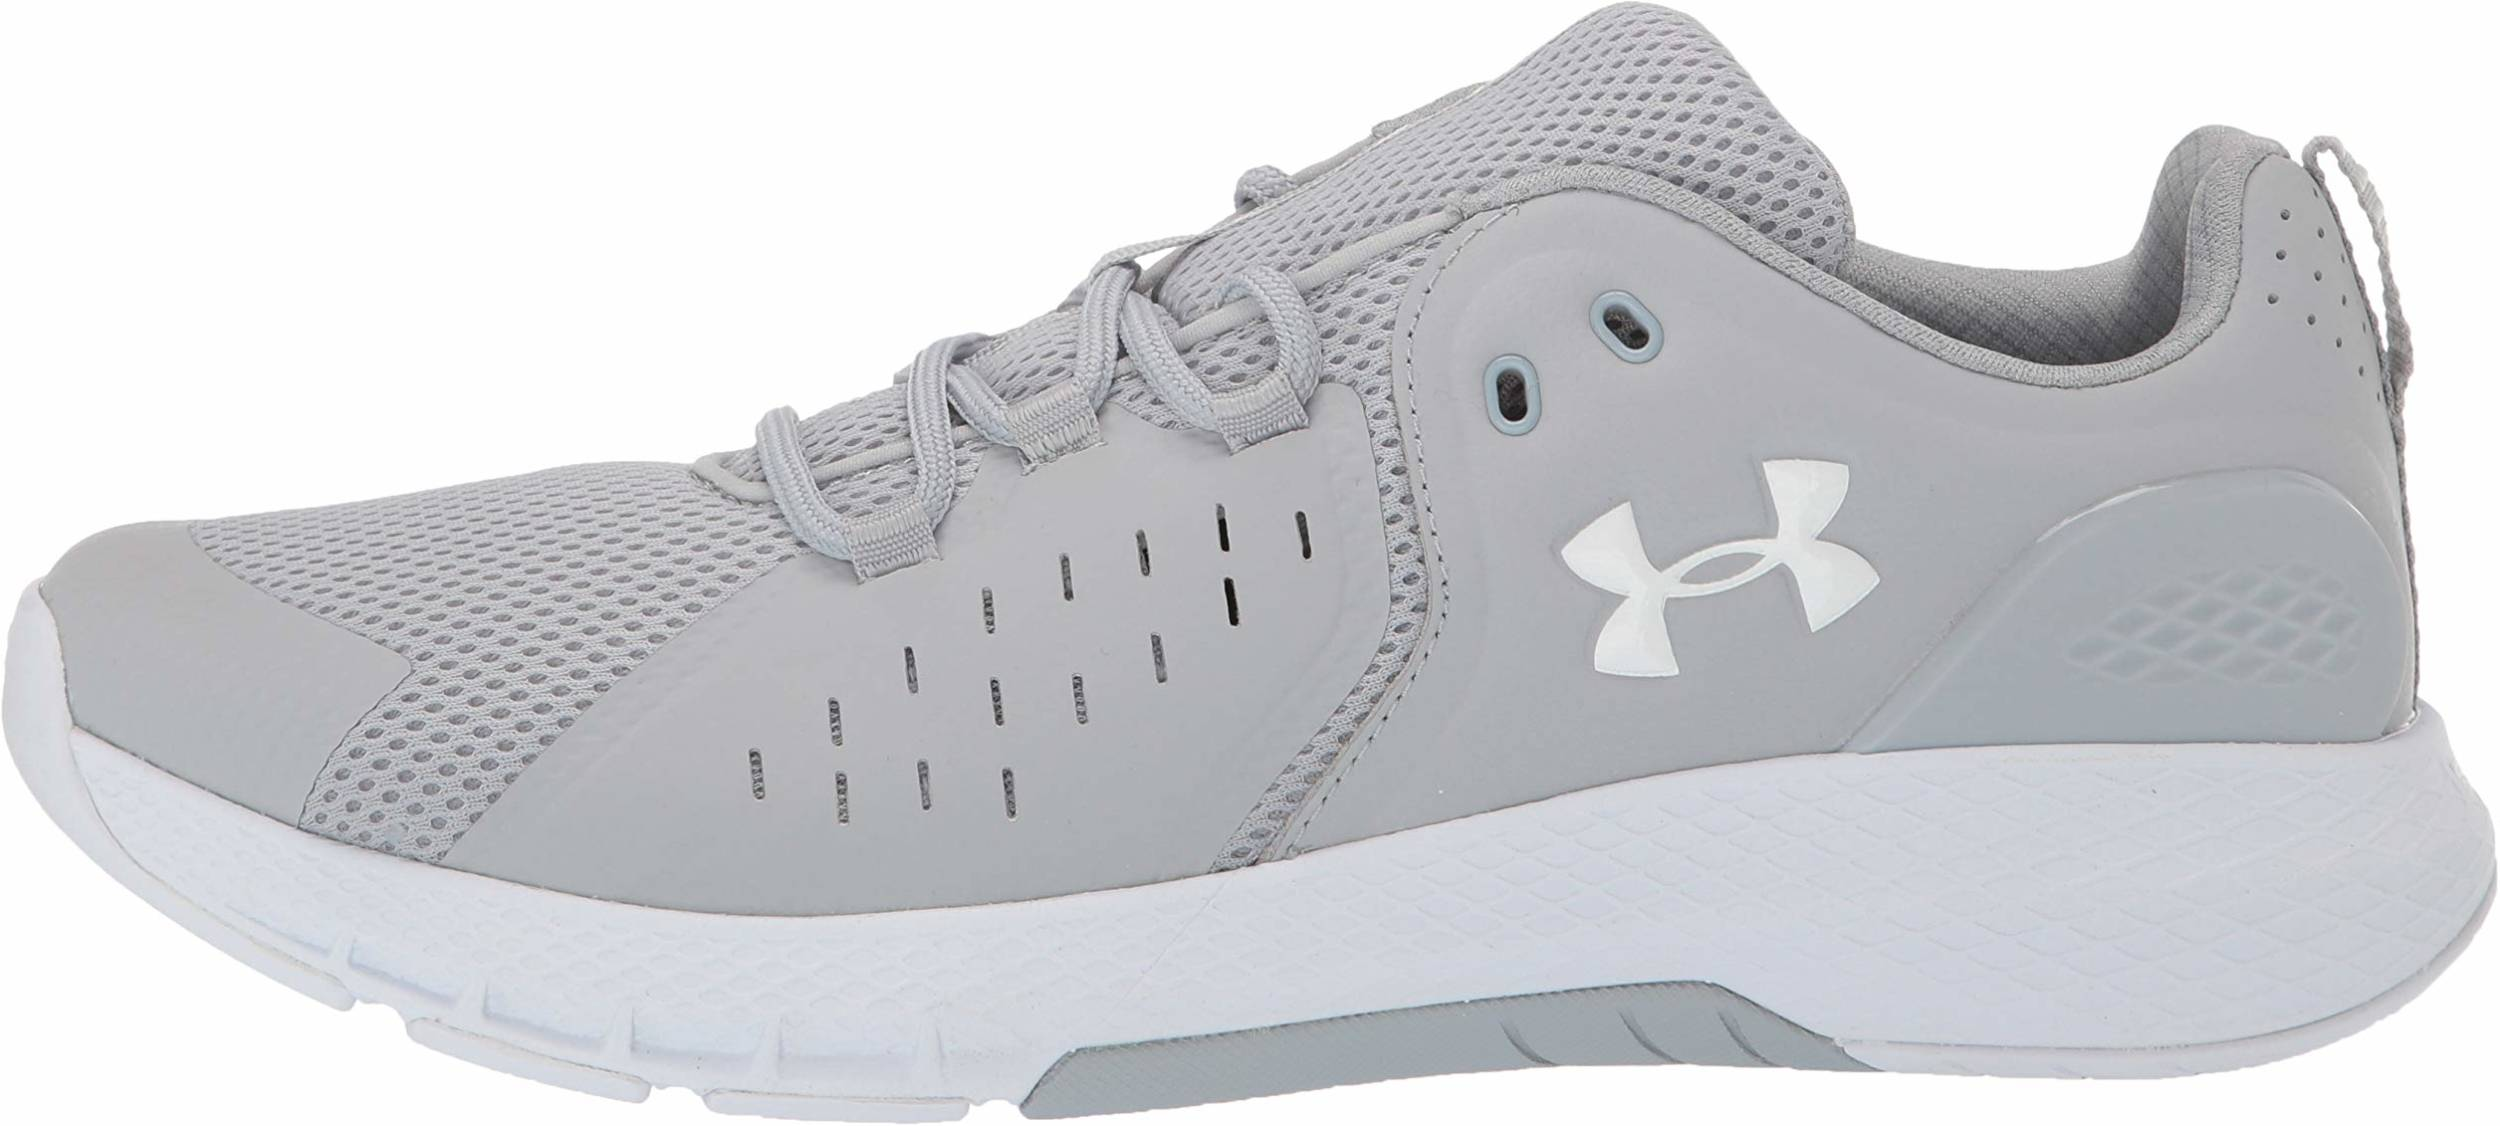 Review of Under Armour Charged Commit 2